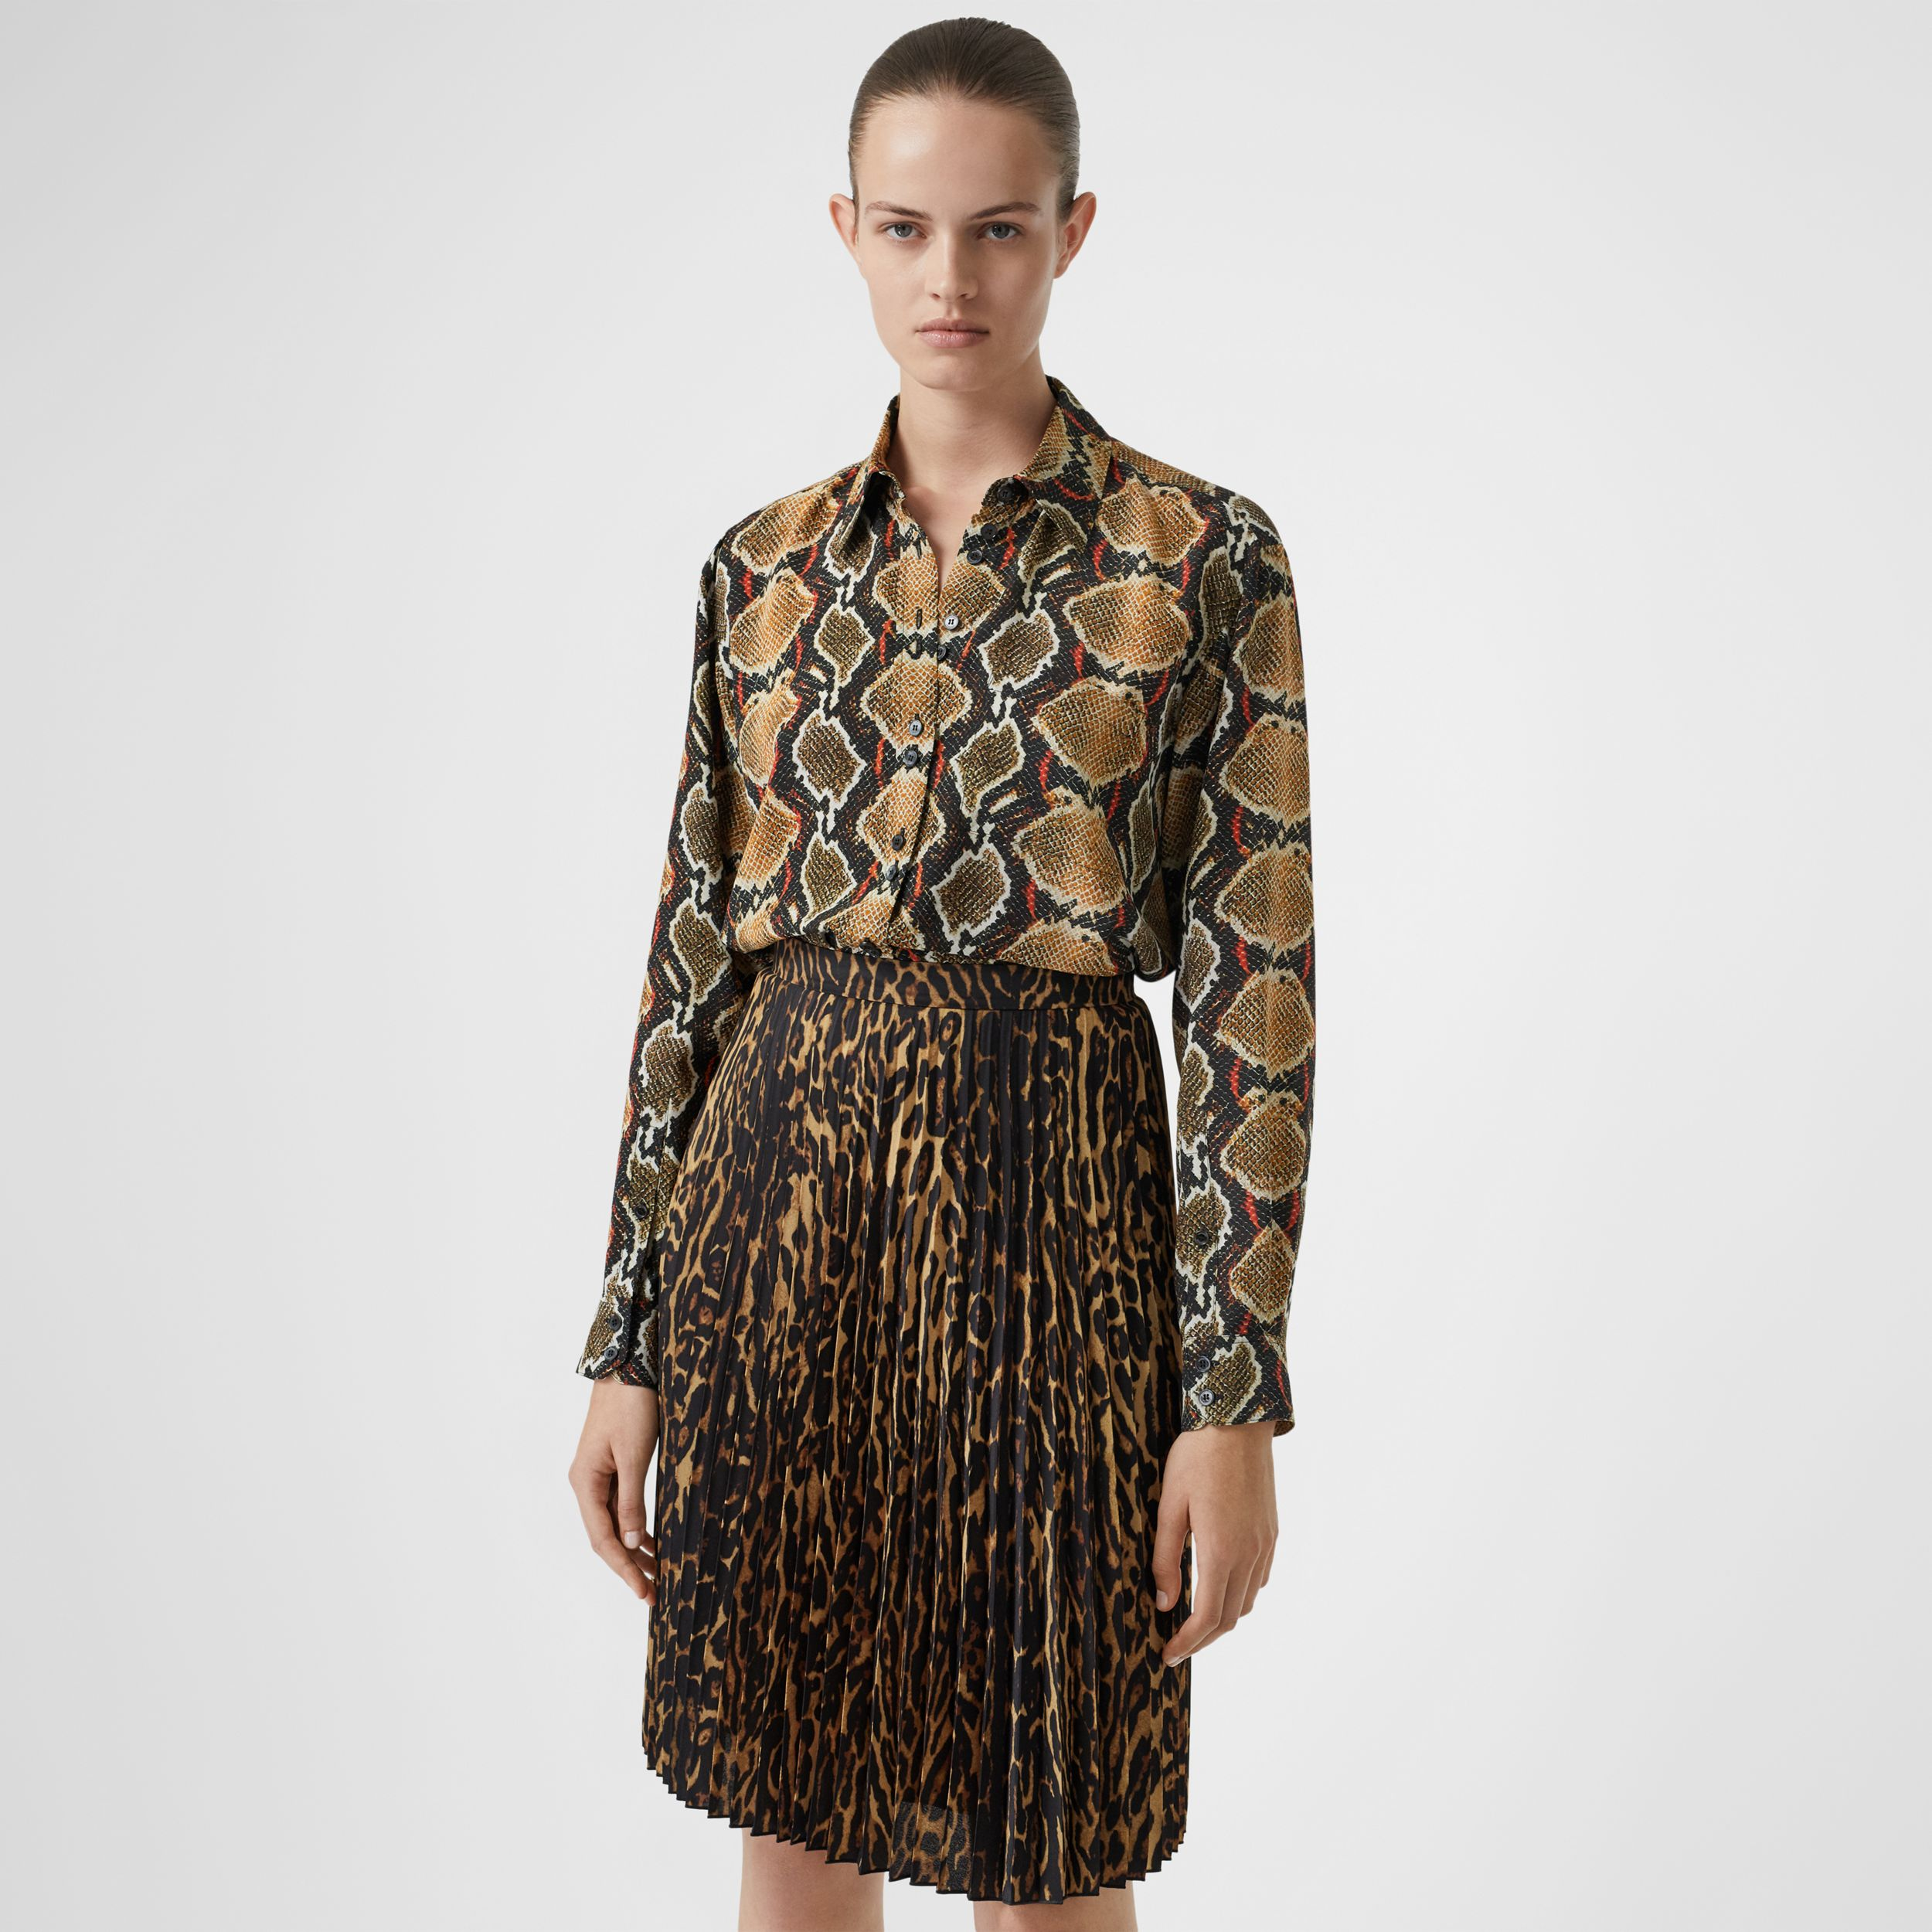 Python Print Silk Shirt in Soft Cocoa - Women | Burberry - 1